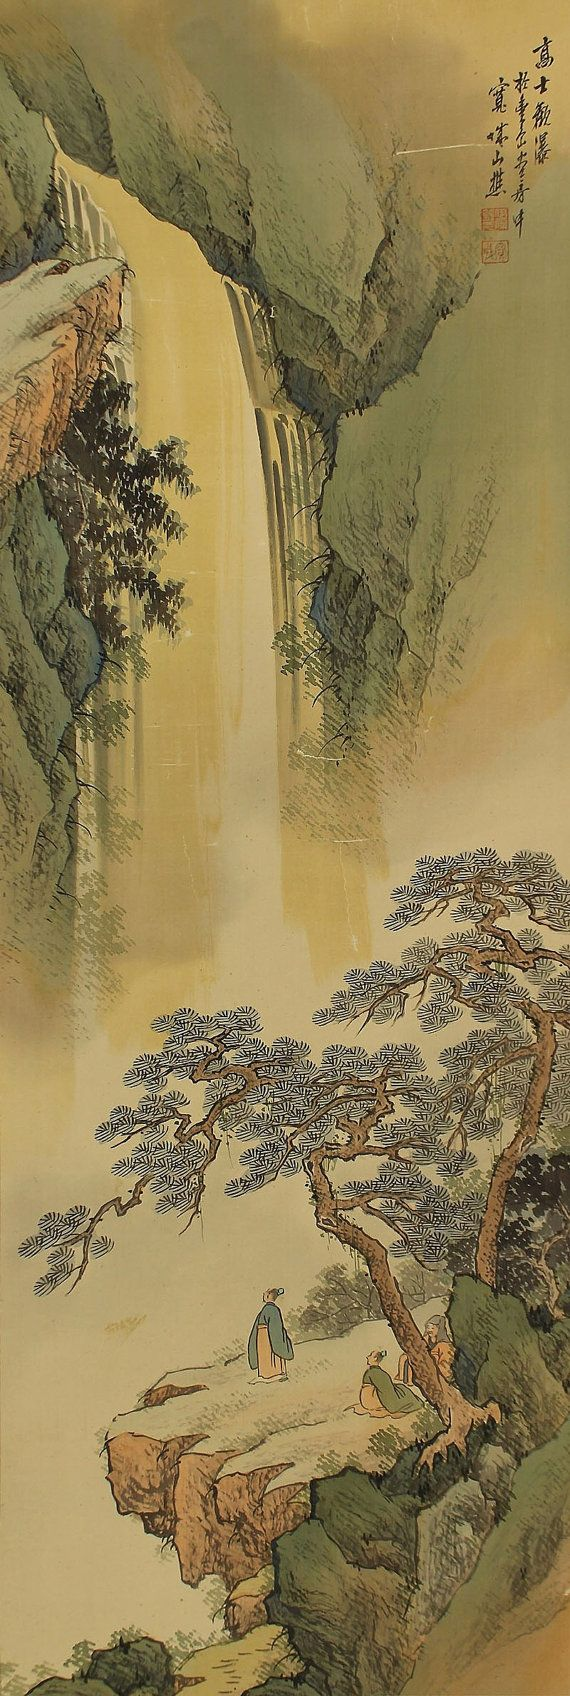 Landscape. Scholars Enjoying Waterfall. Japanese hanging scroll, Kakejiku.